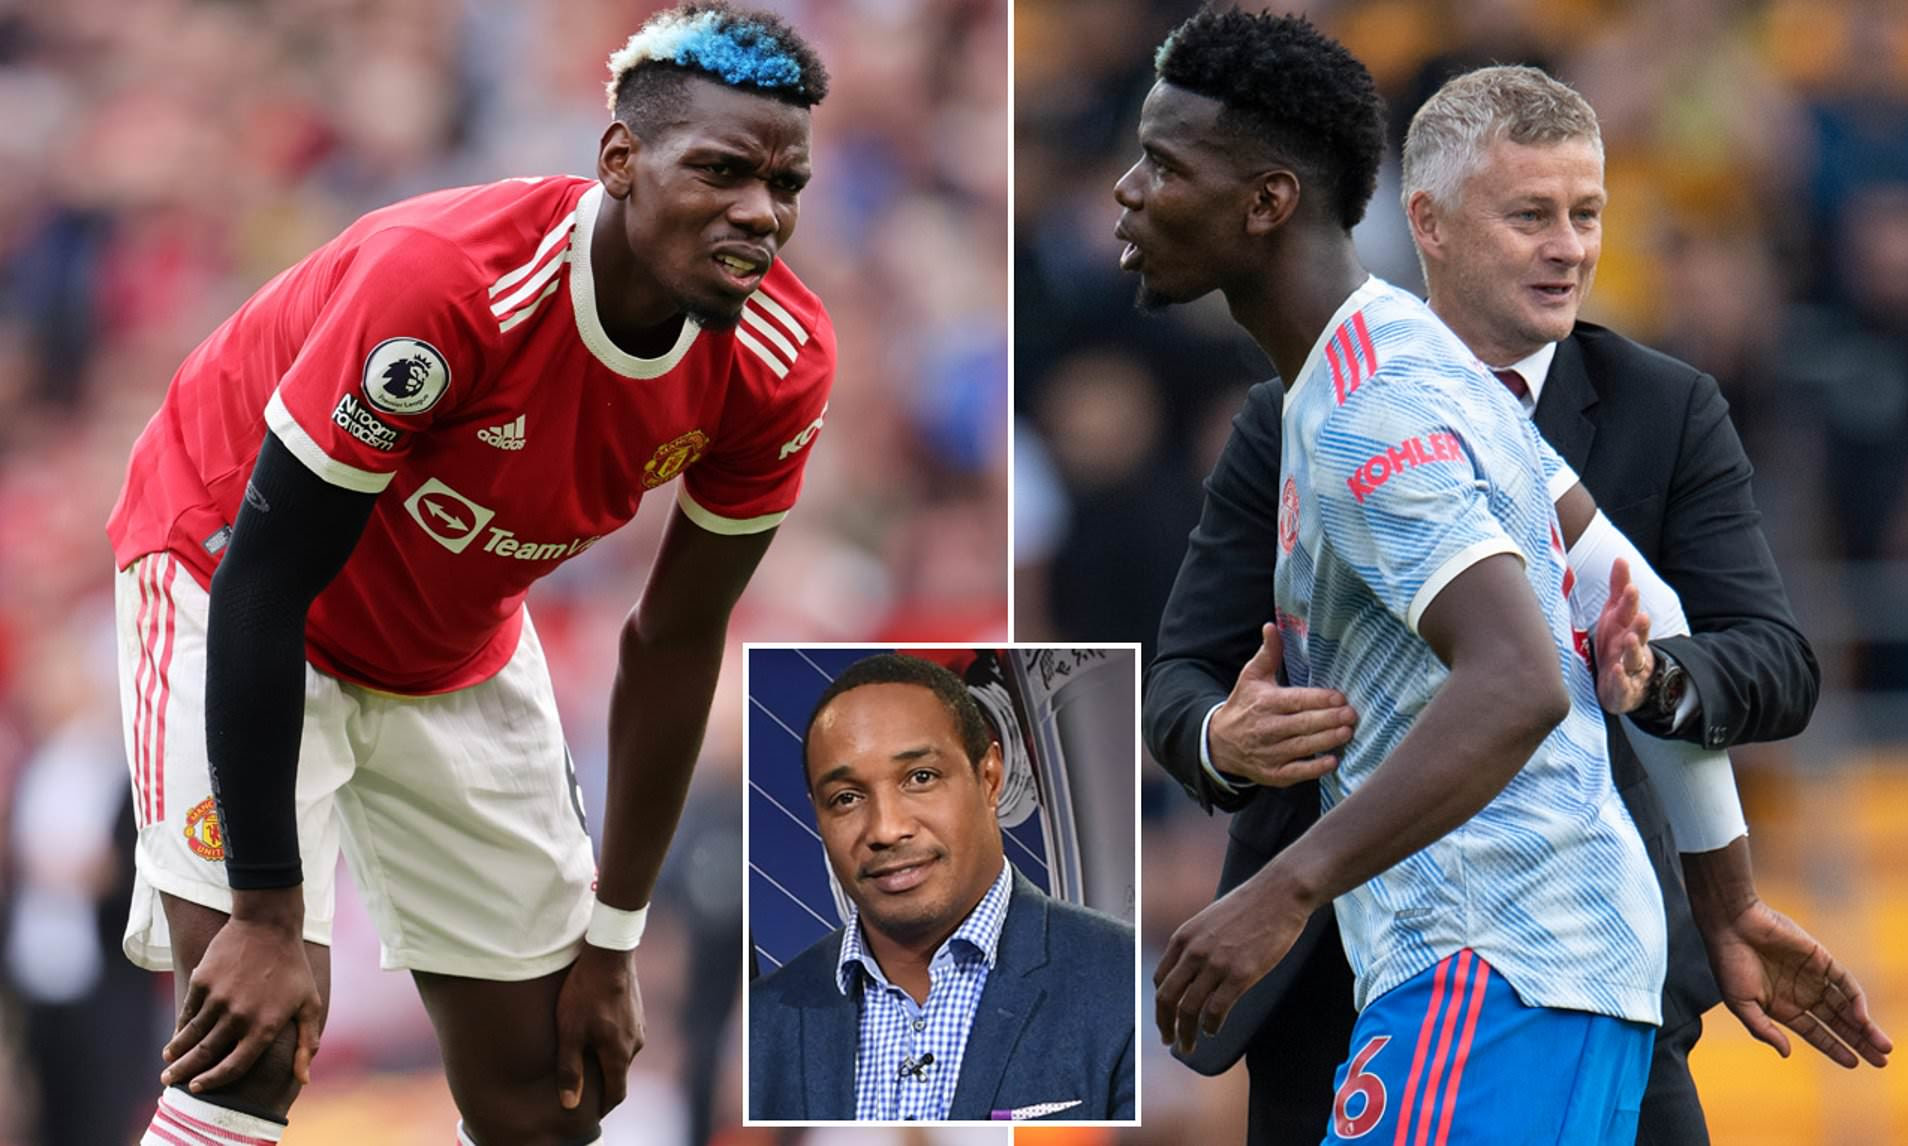 Manchester United's contract offer to Paul Pogba is a 'sign of desperation, says Paul Ince